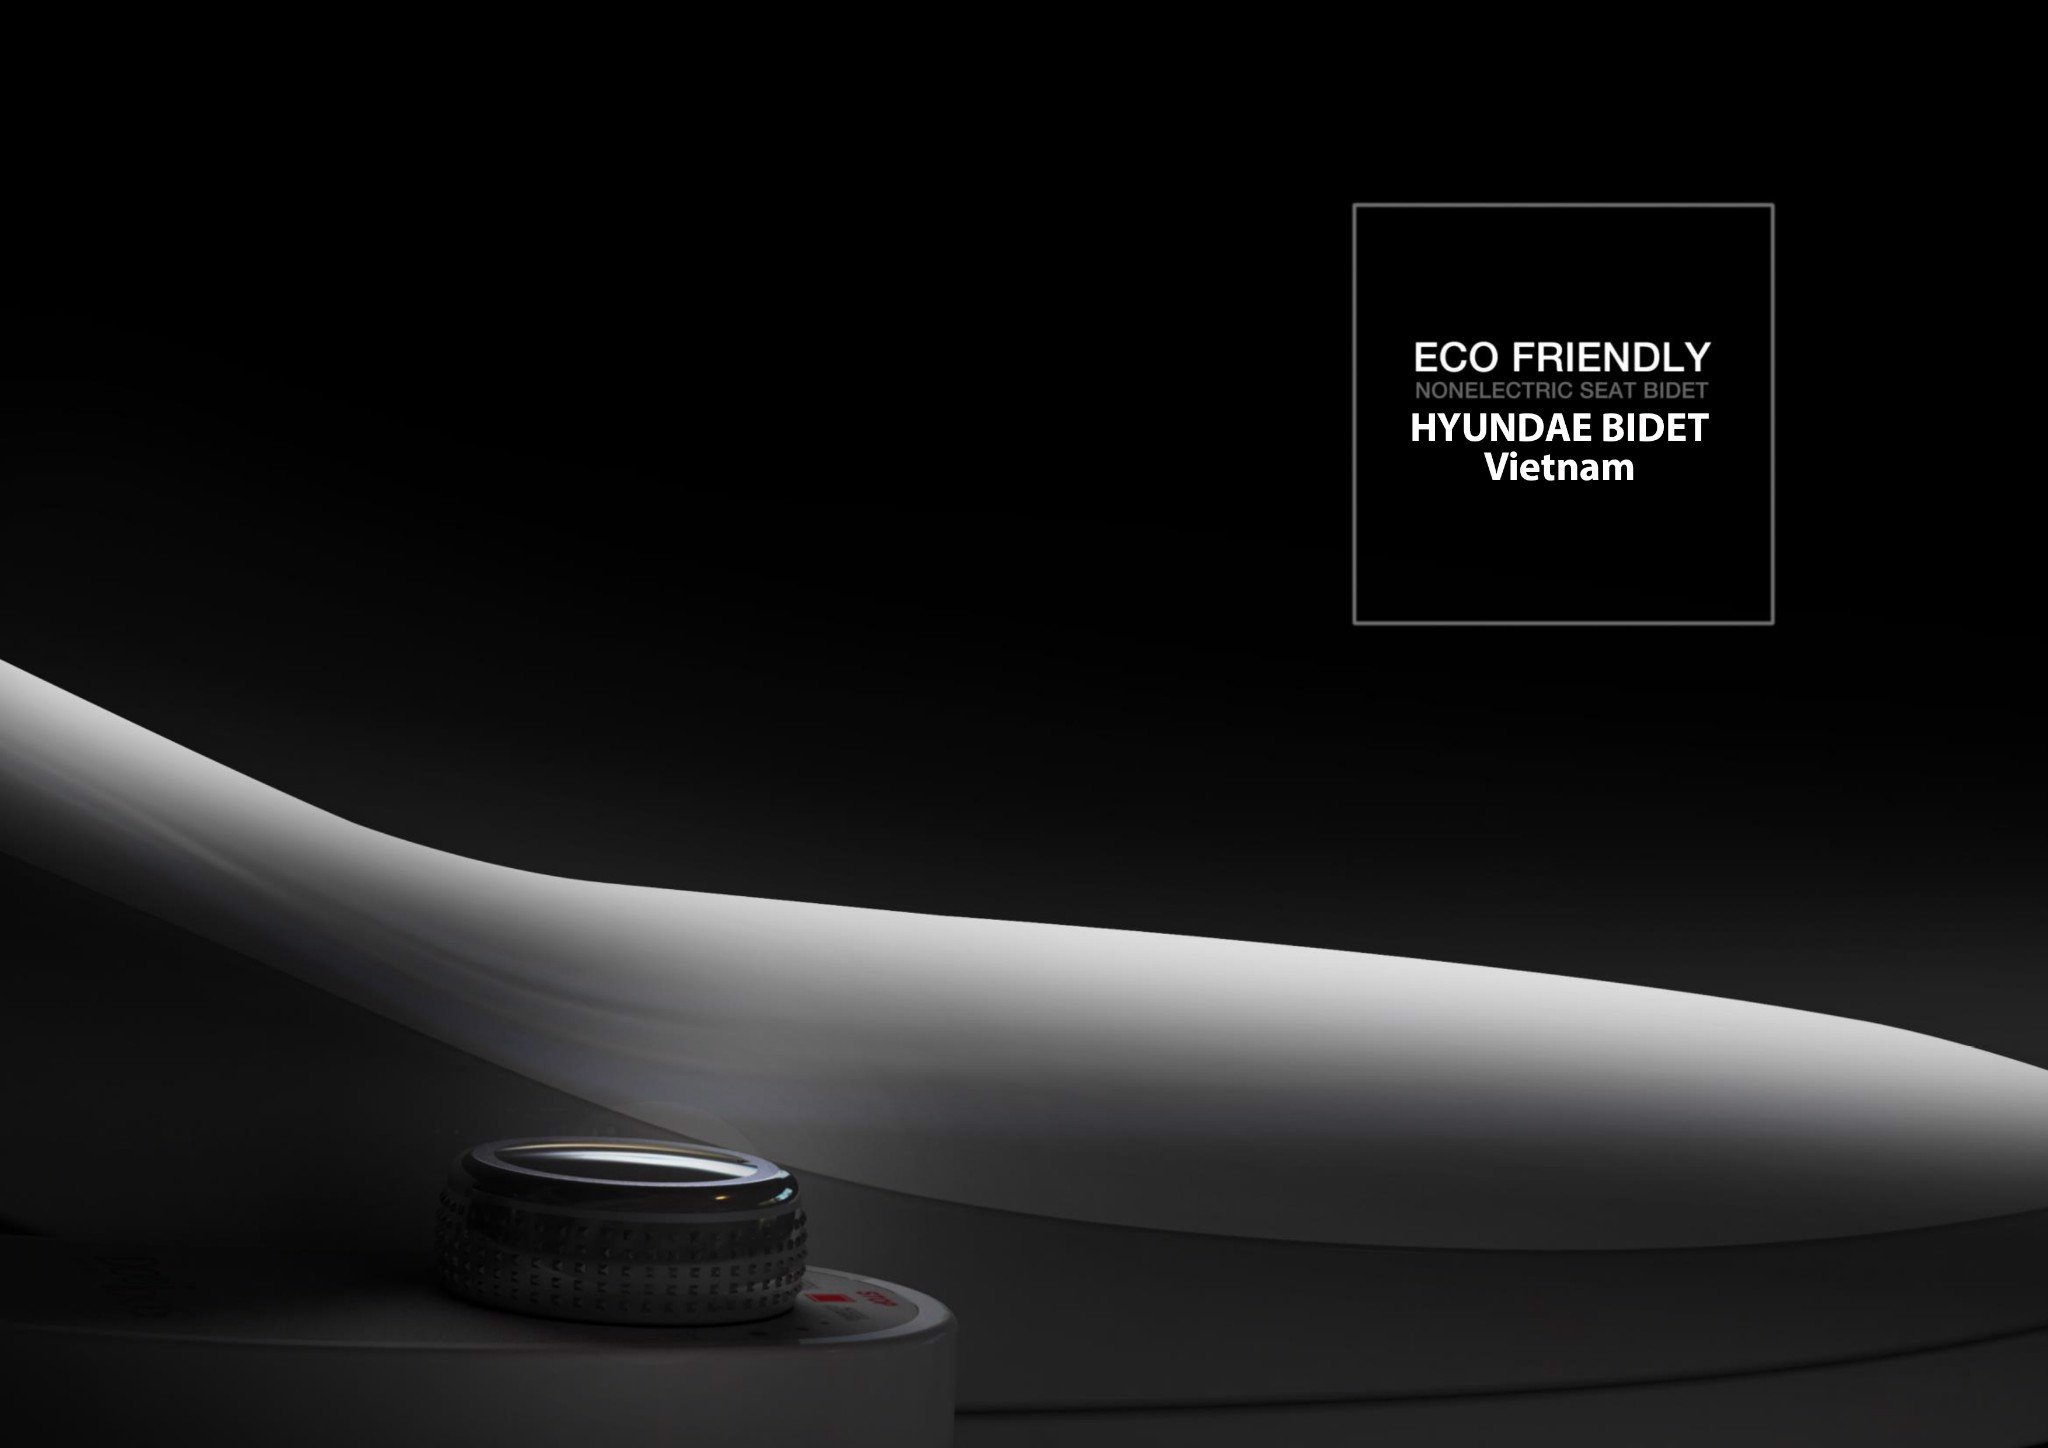 INTRODUCING NON-ELECTRIC BIDET PRODUCTS HB-9000